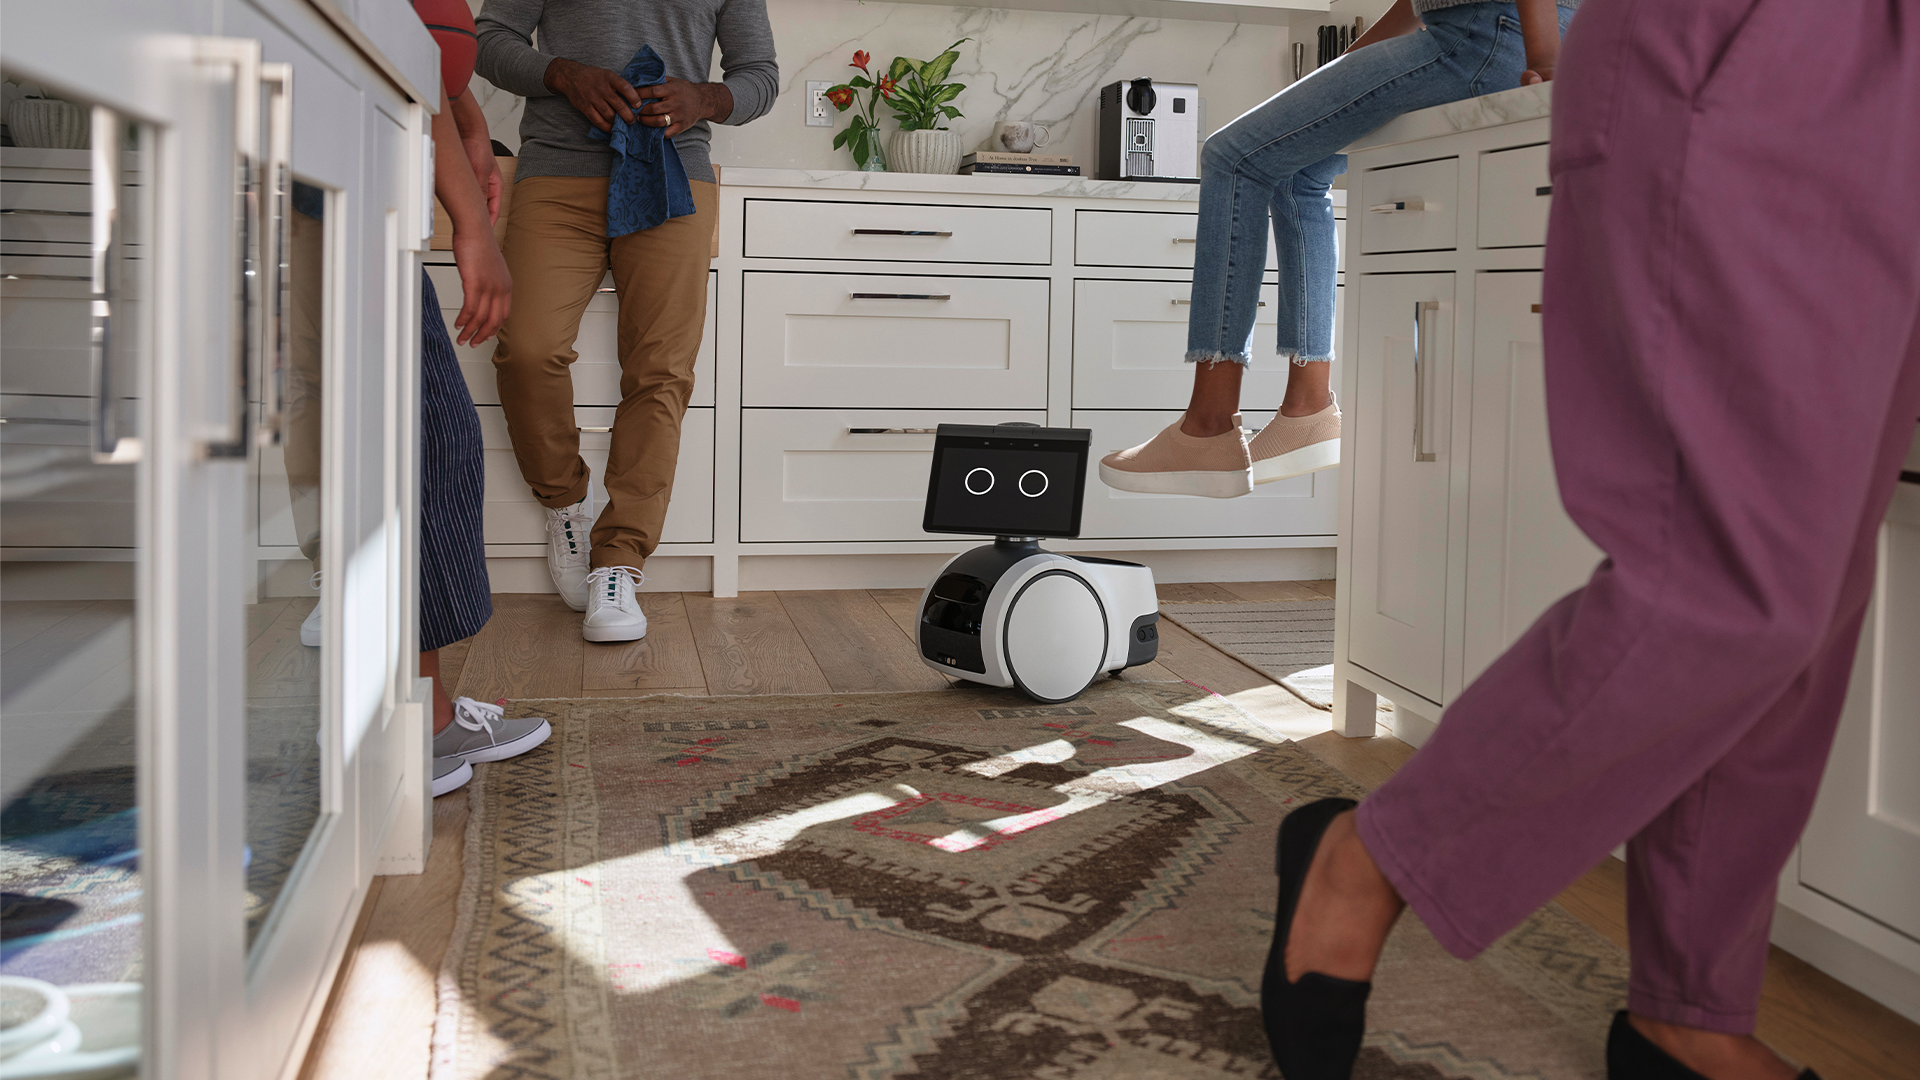 Amazon Astro rolling through a group of people in a kitchen.